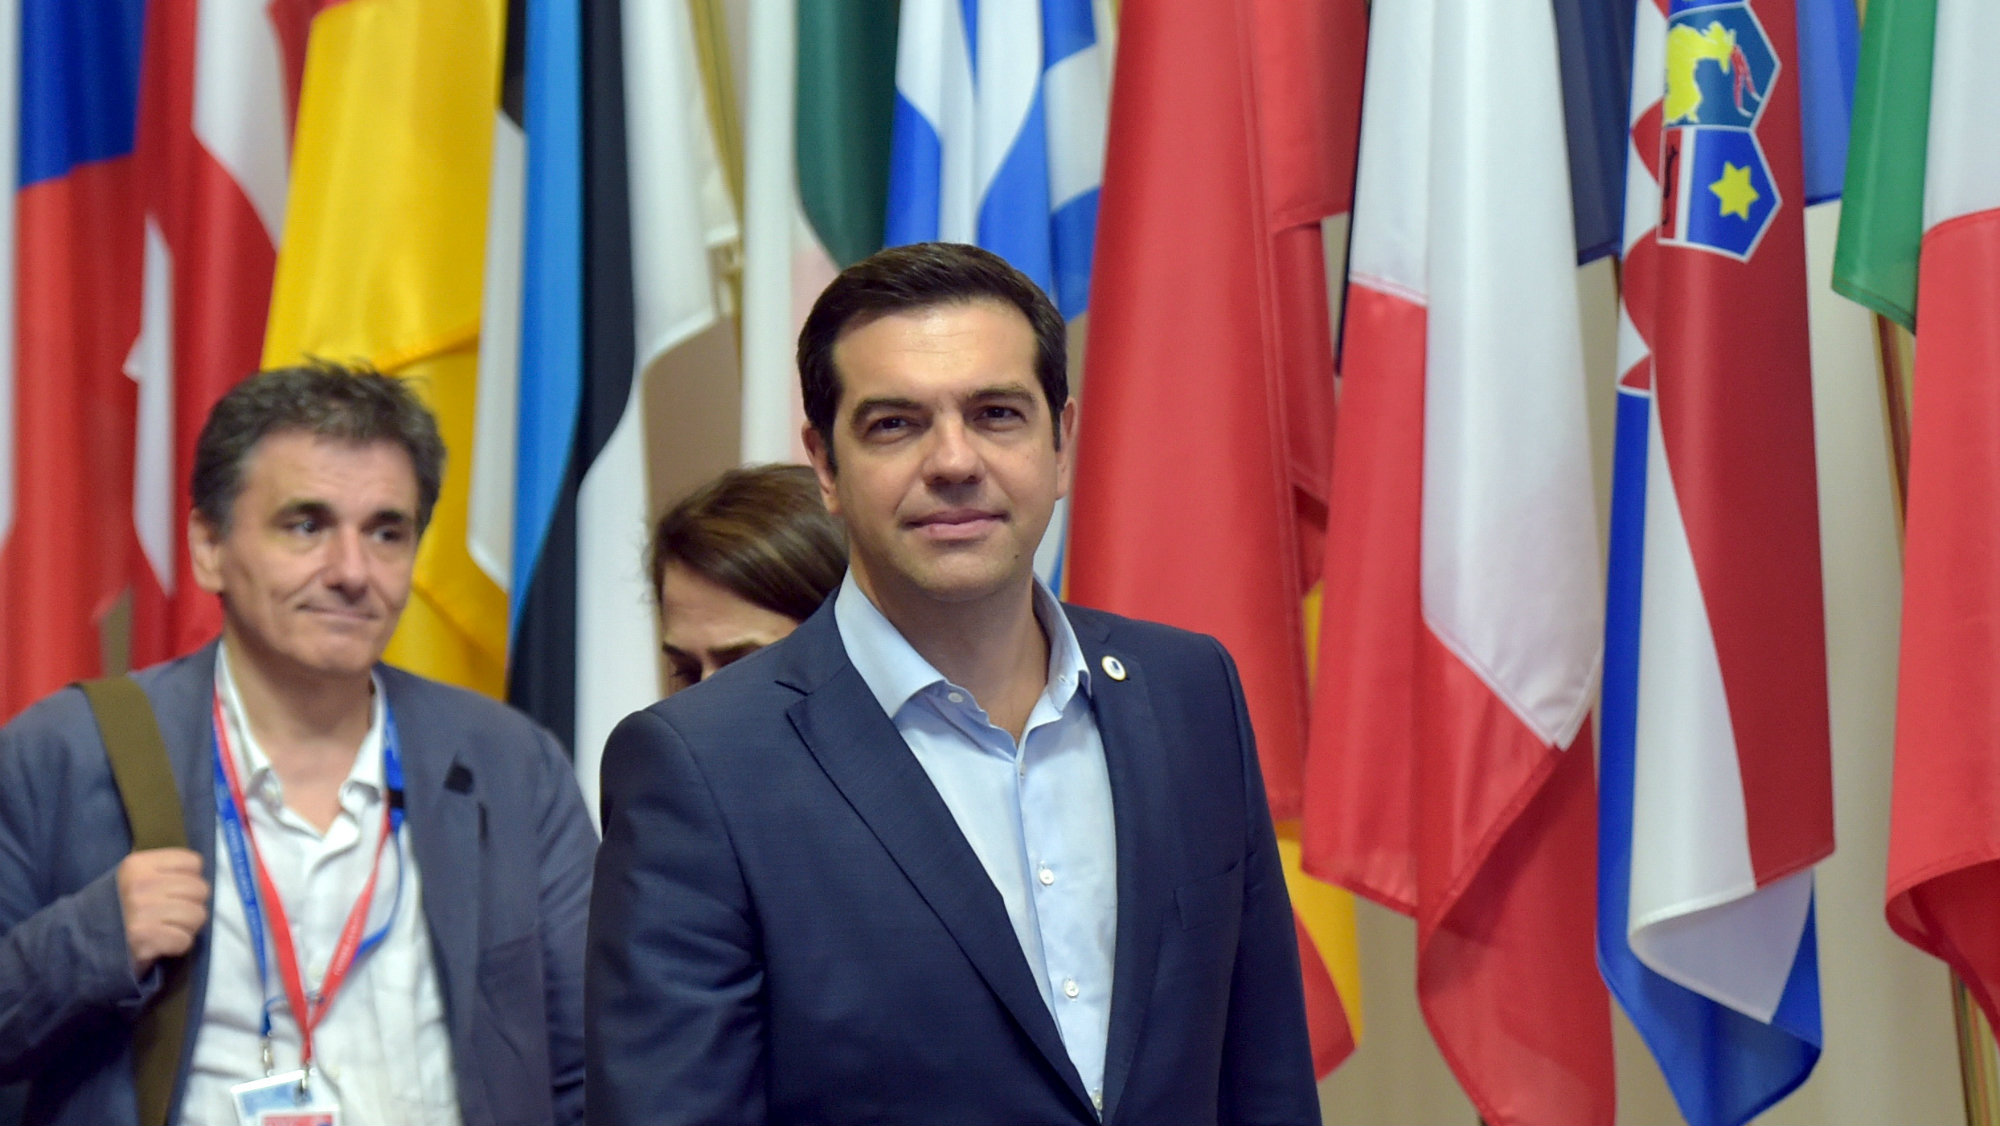 Greece's Prime Minister Alexis Tsipras (C) and Greek Finance Minister Euclid Tsakalotos (L) leave a euro zone leaders summit in Brussels, Belgium, July 13, 2015.